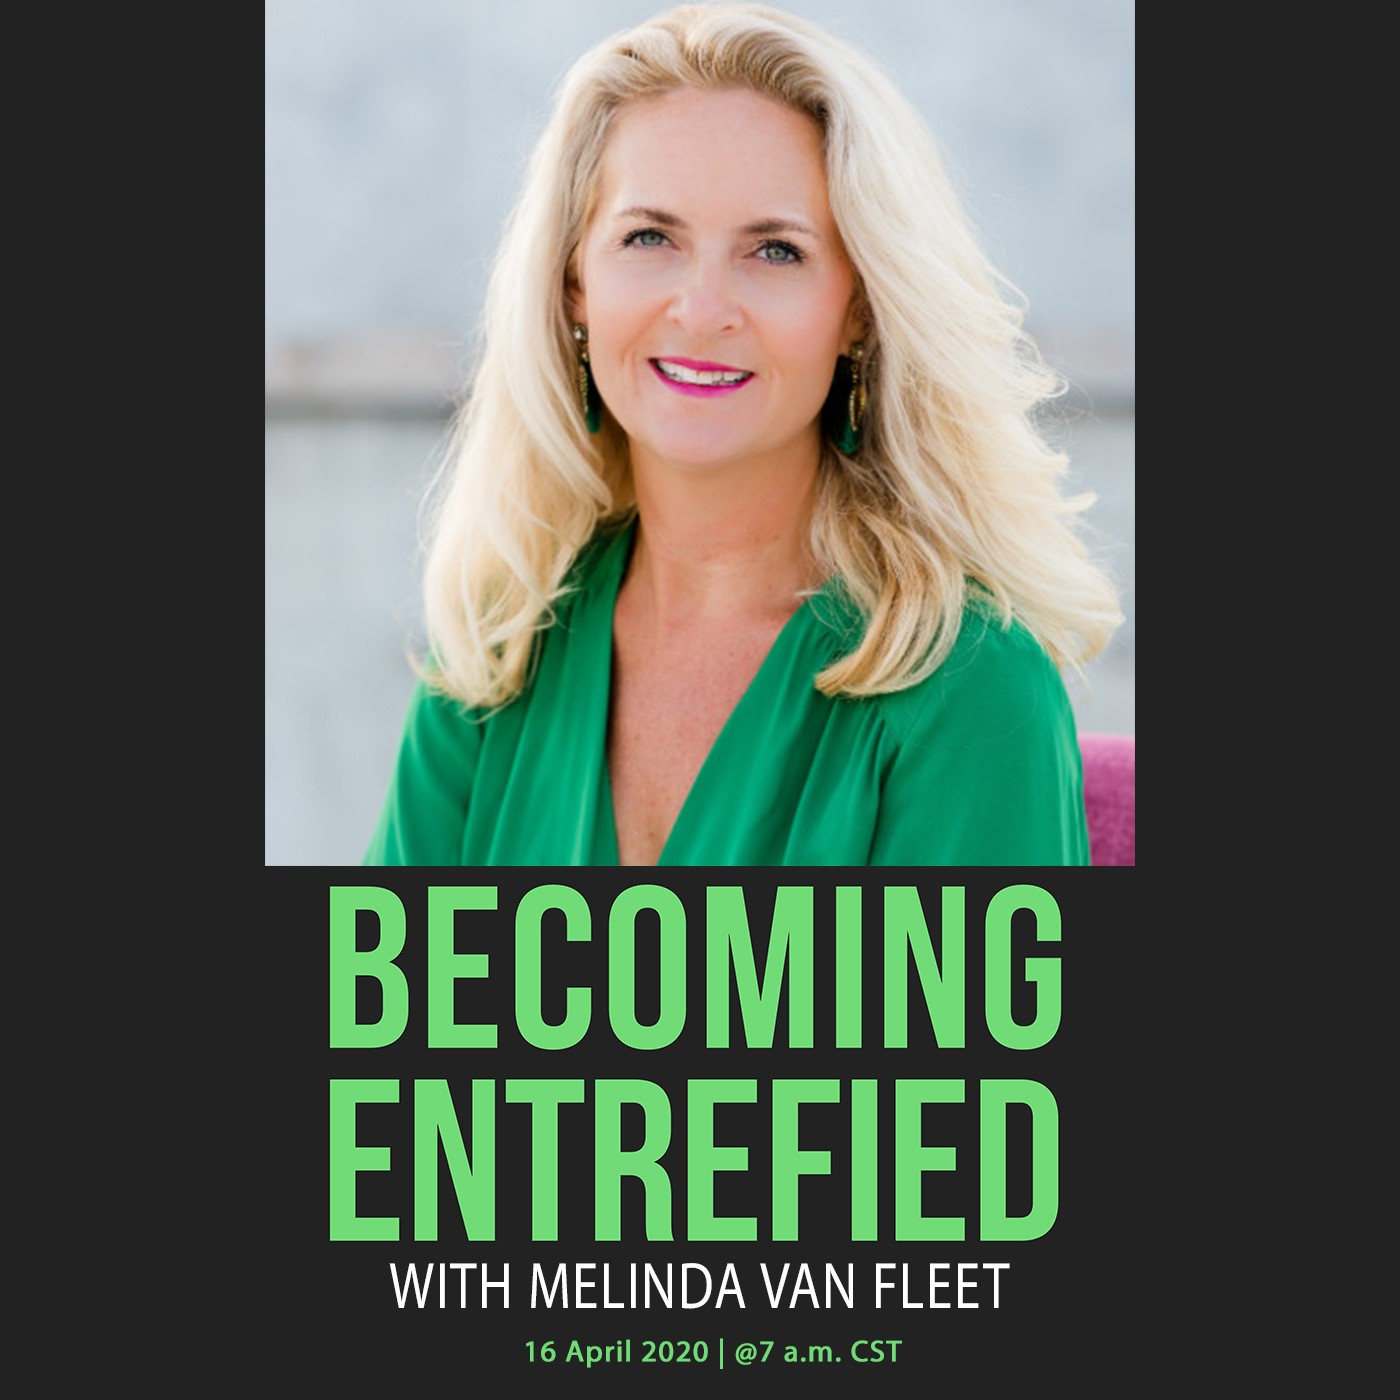 Becoming Entrefied